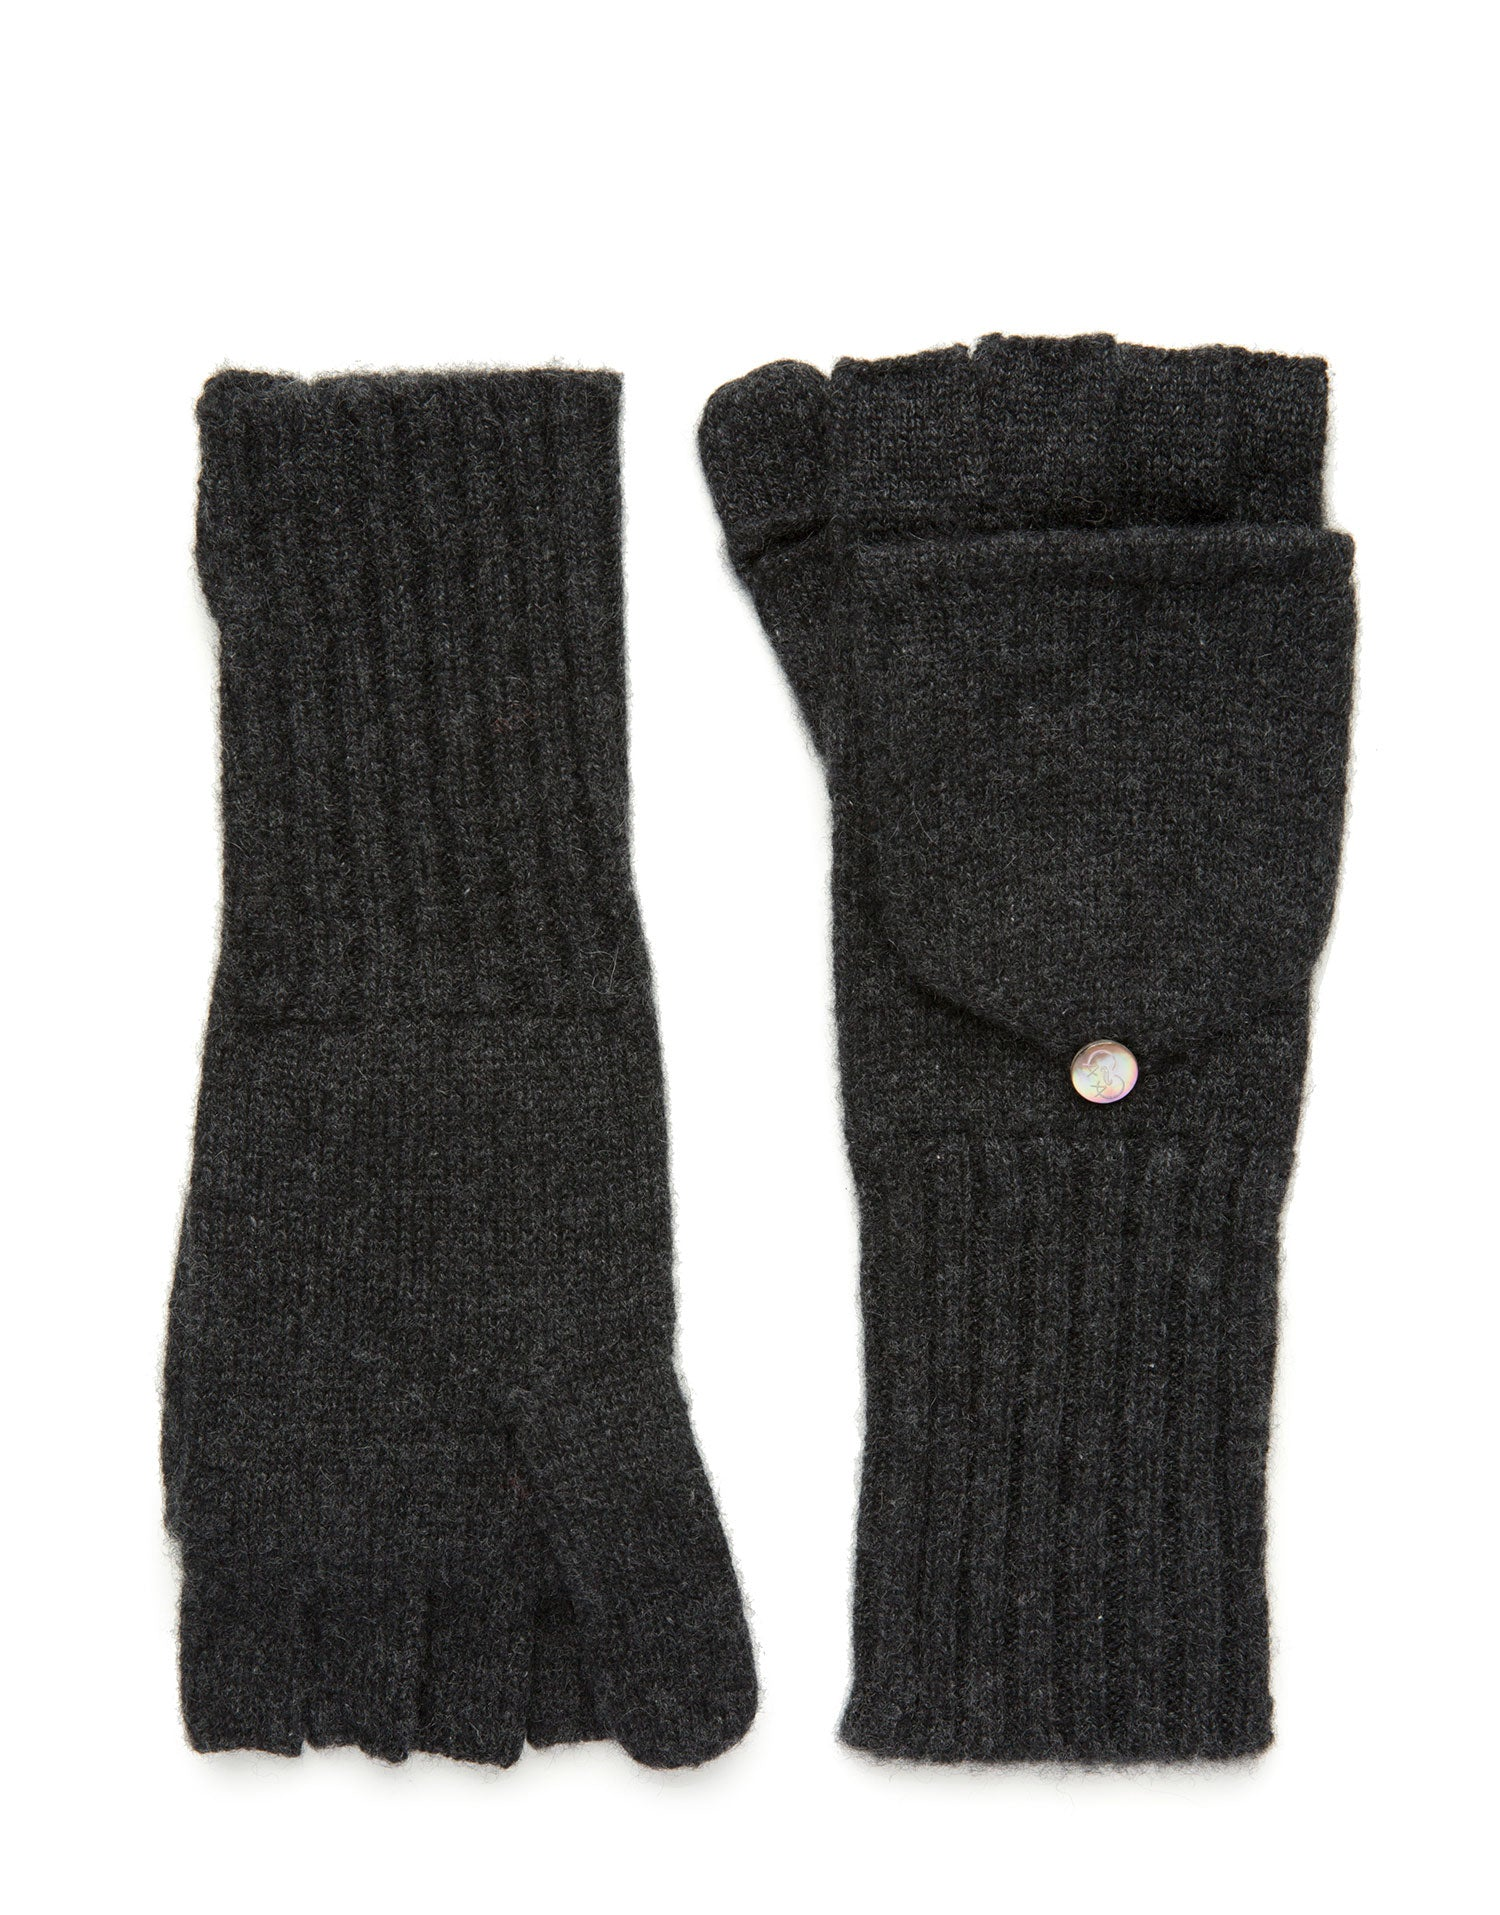 womens cinder 100% cashmere over the wrist length glove